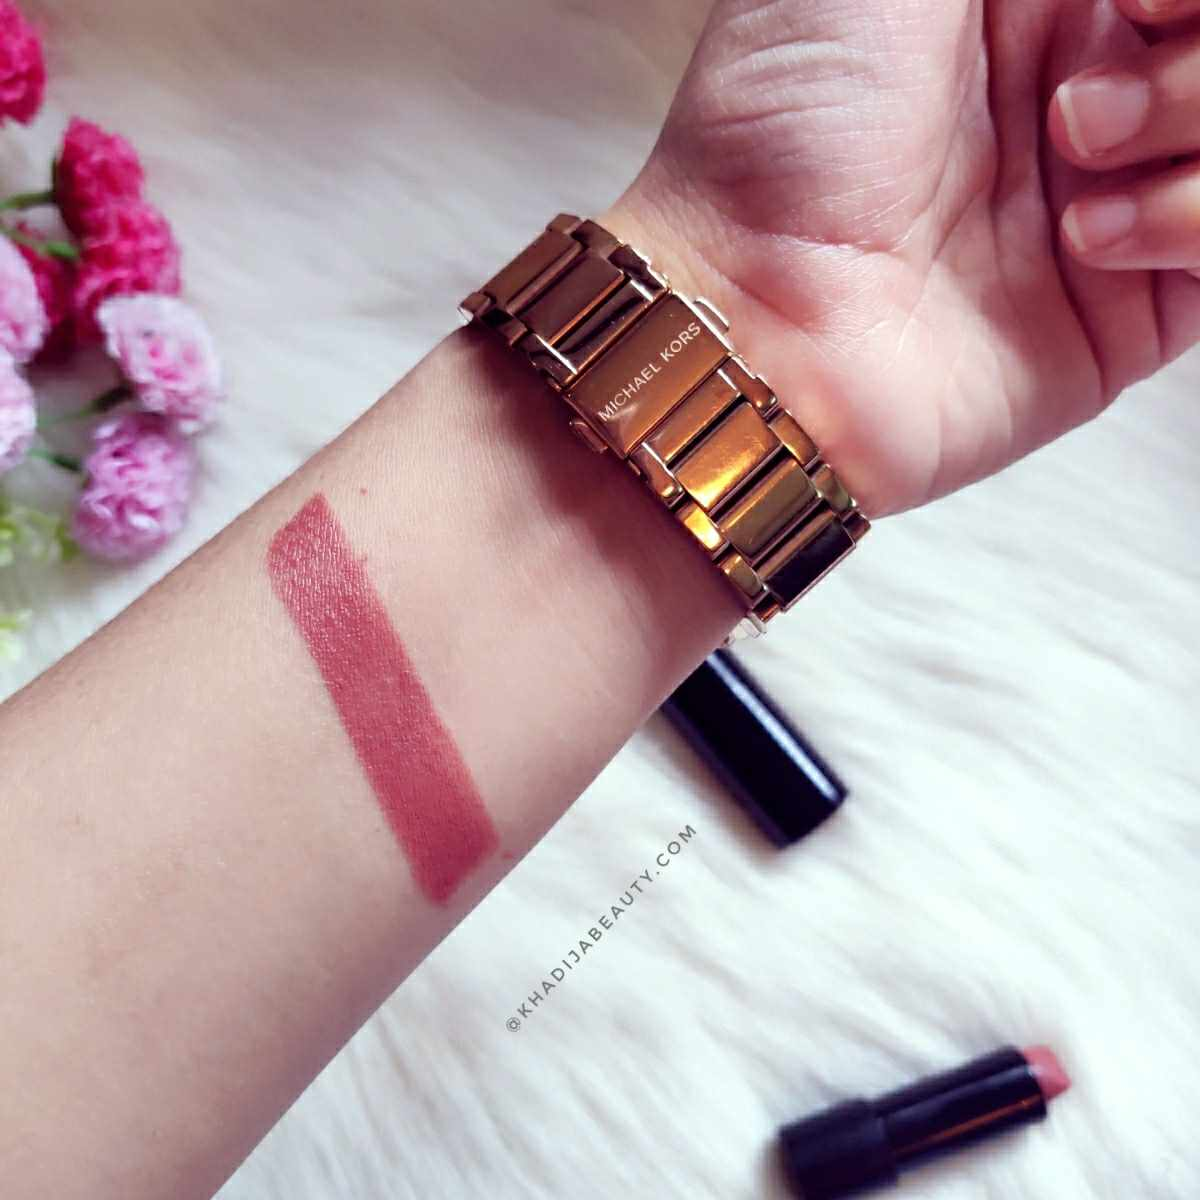 Ruby's Organics lipstick Bare Review & Swatches